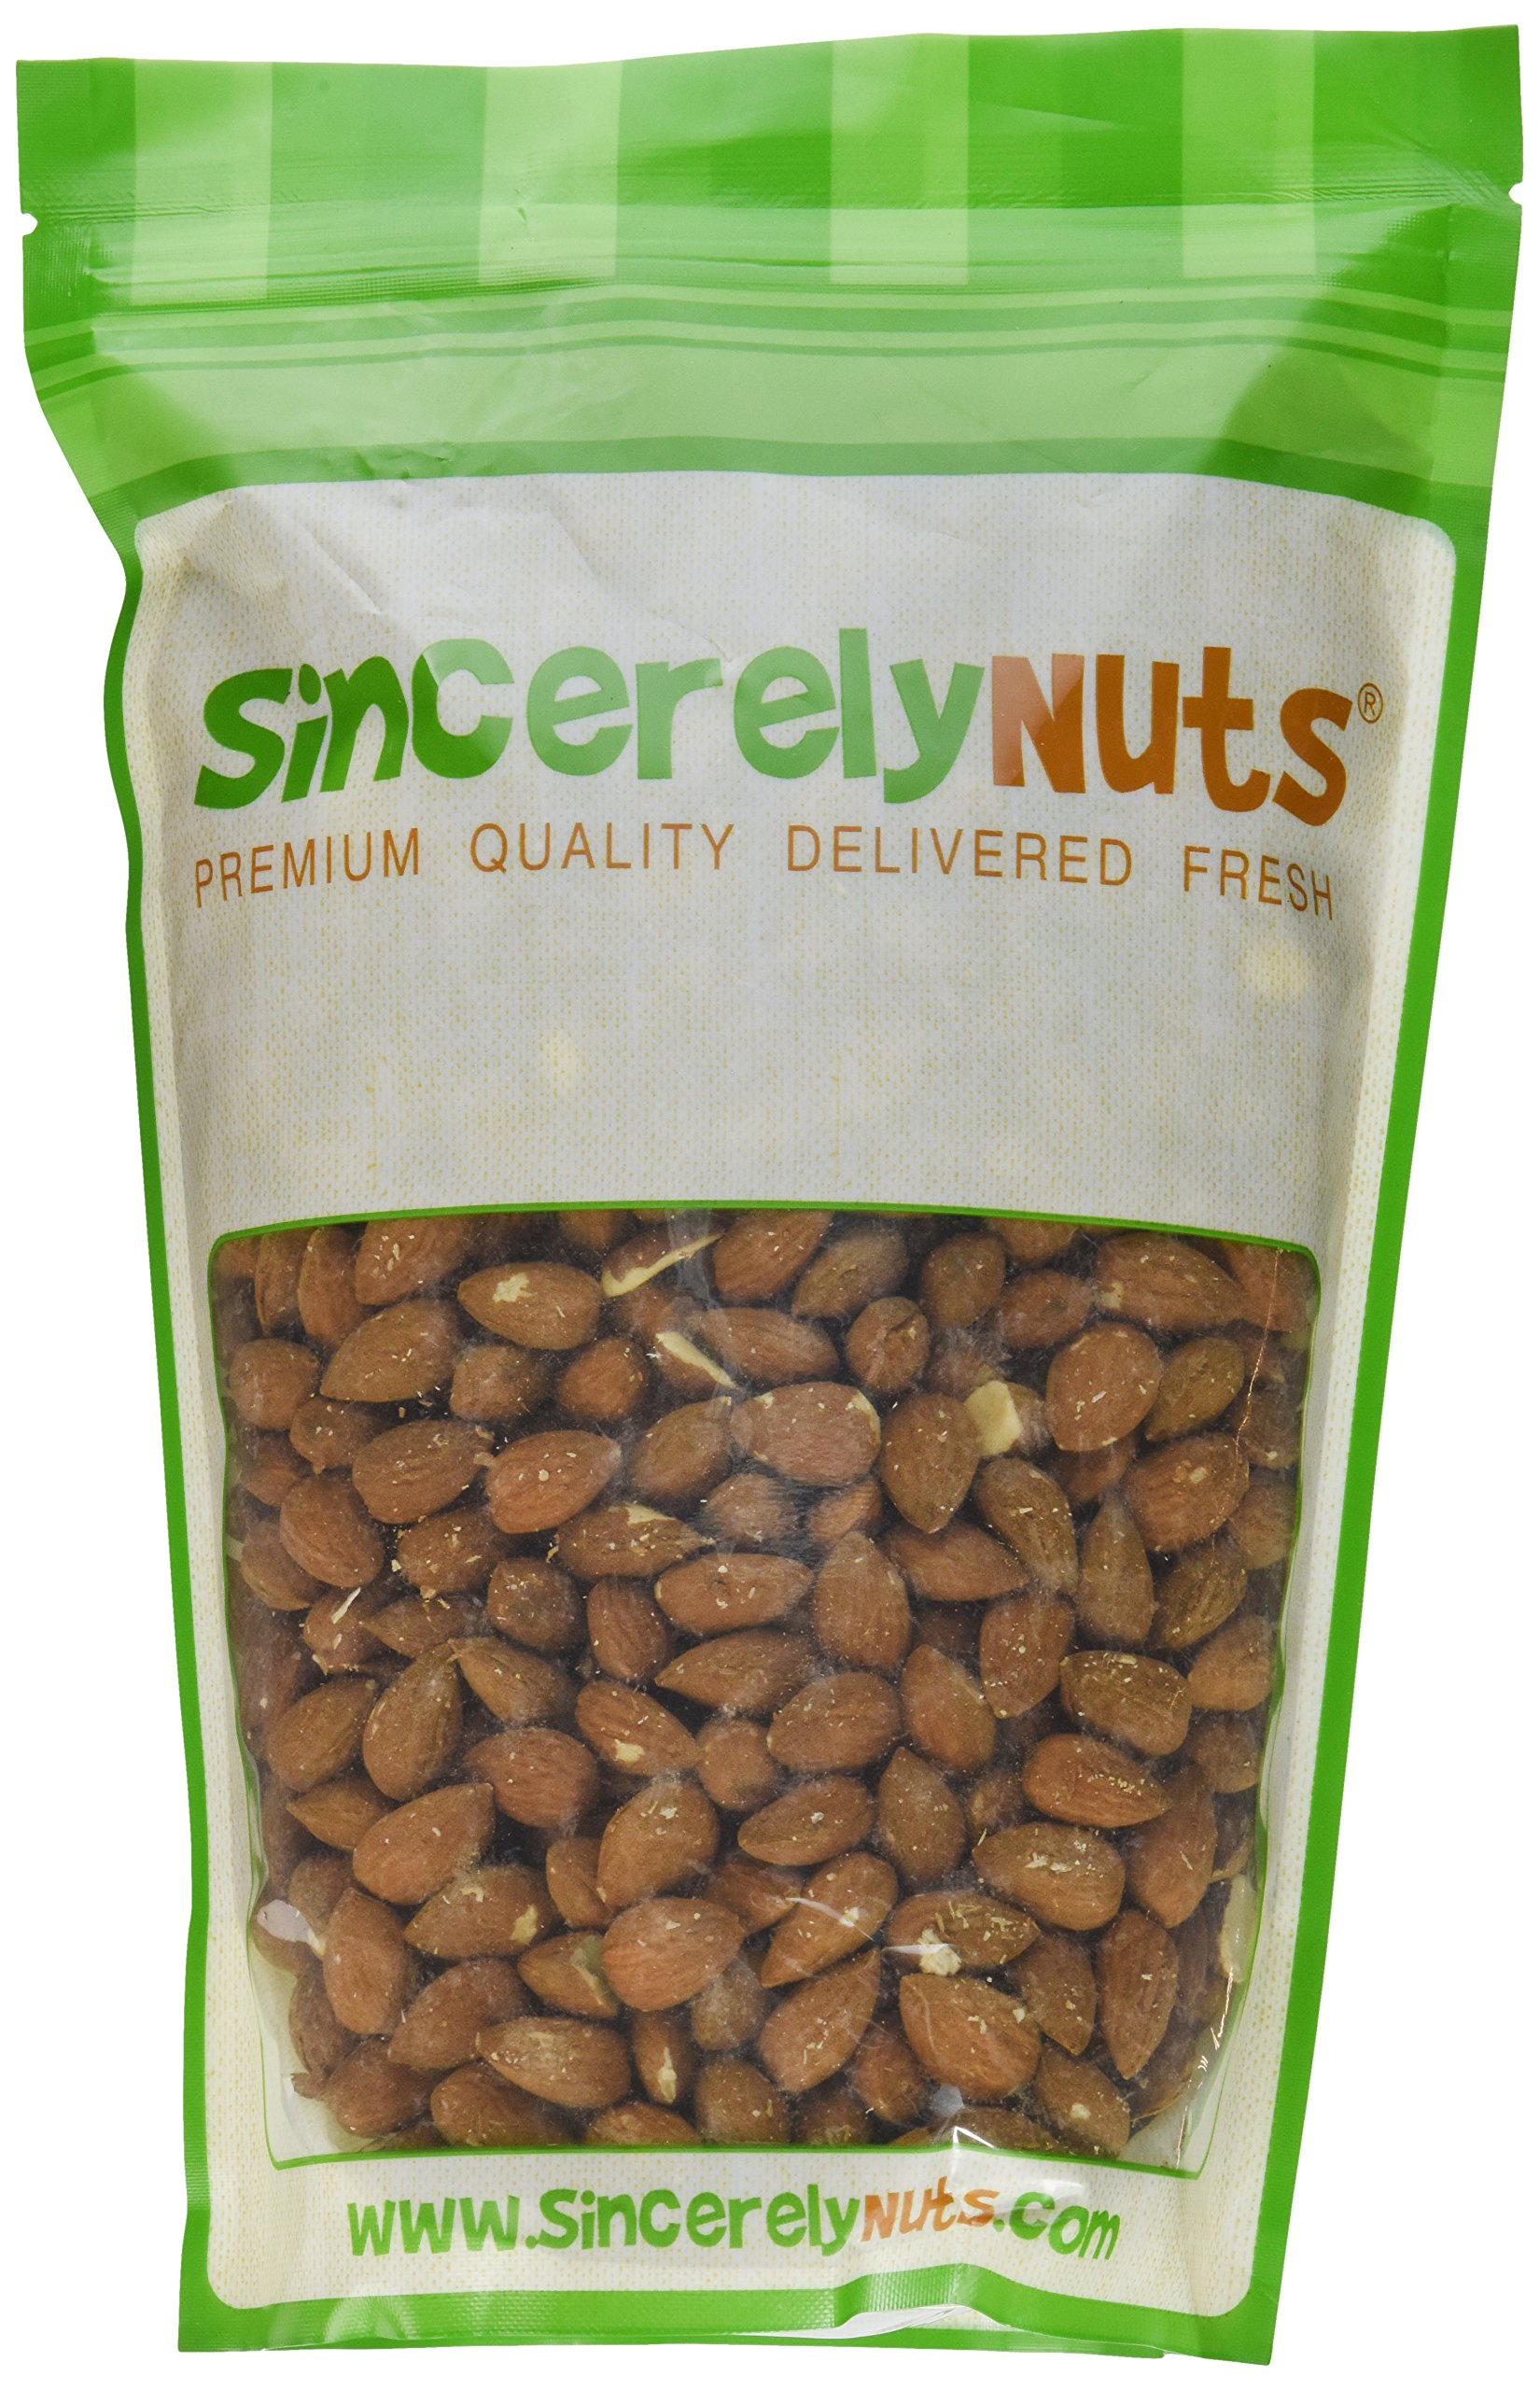 Sincerely Nuts - Natural Whole Raw Almonds Unsalted No Shell | 2 Lb. Bag | Low Calorie, Low Sodium, Kosher, Vegan, Gluten Free | Gourmet Kosher Snack Food | Source of Fiber, Protein, Nutrients by Sincerely Nuts (Image #2)